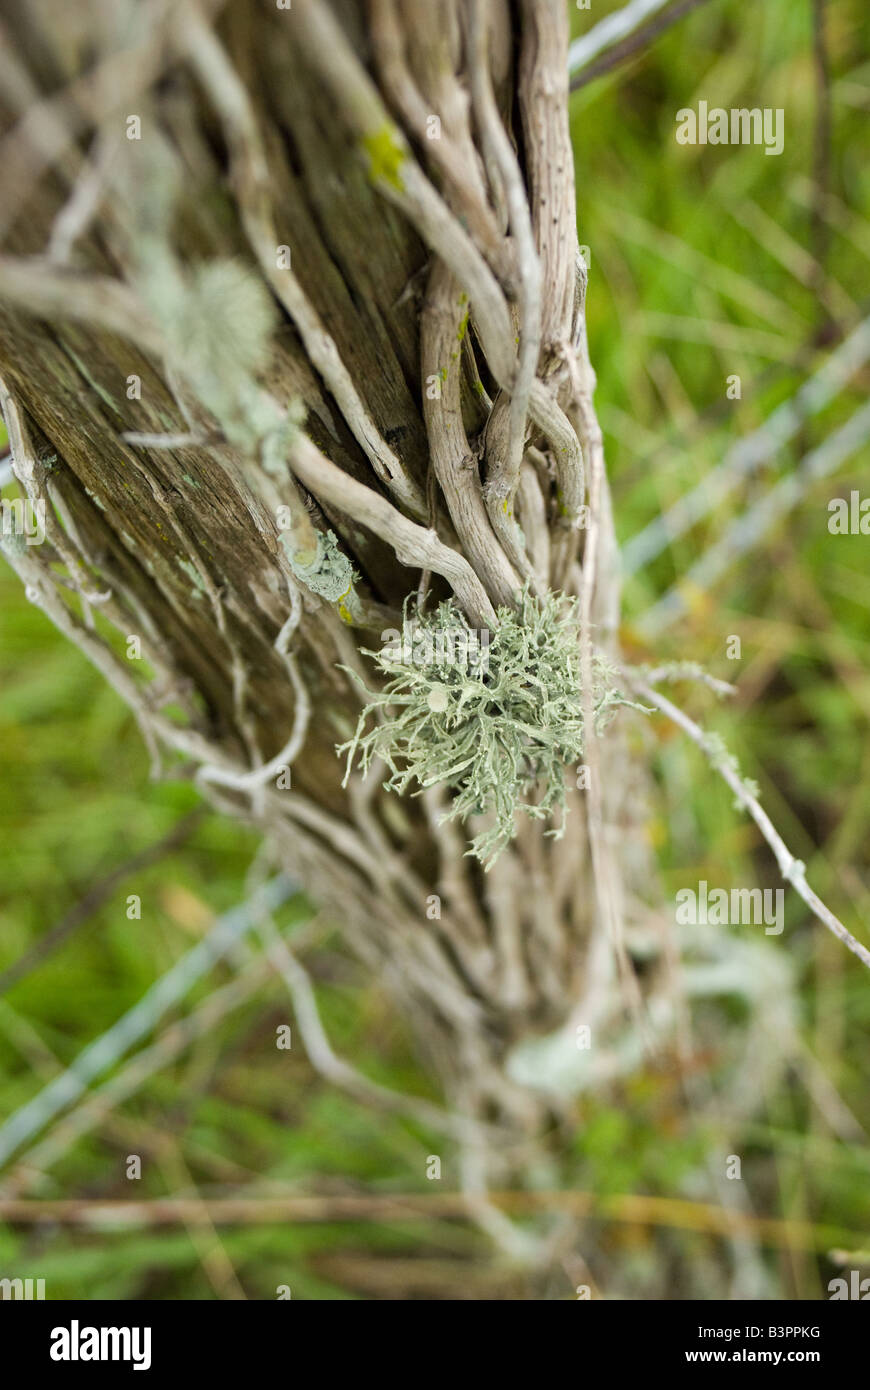 Lichens grow on dead vines on a fencepostStock Photo